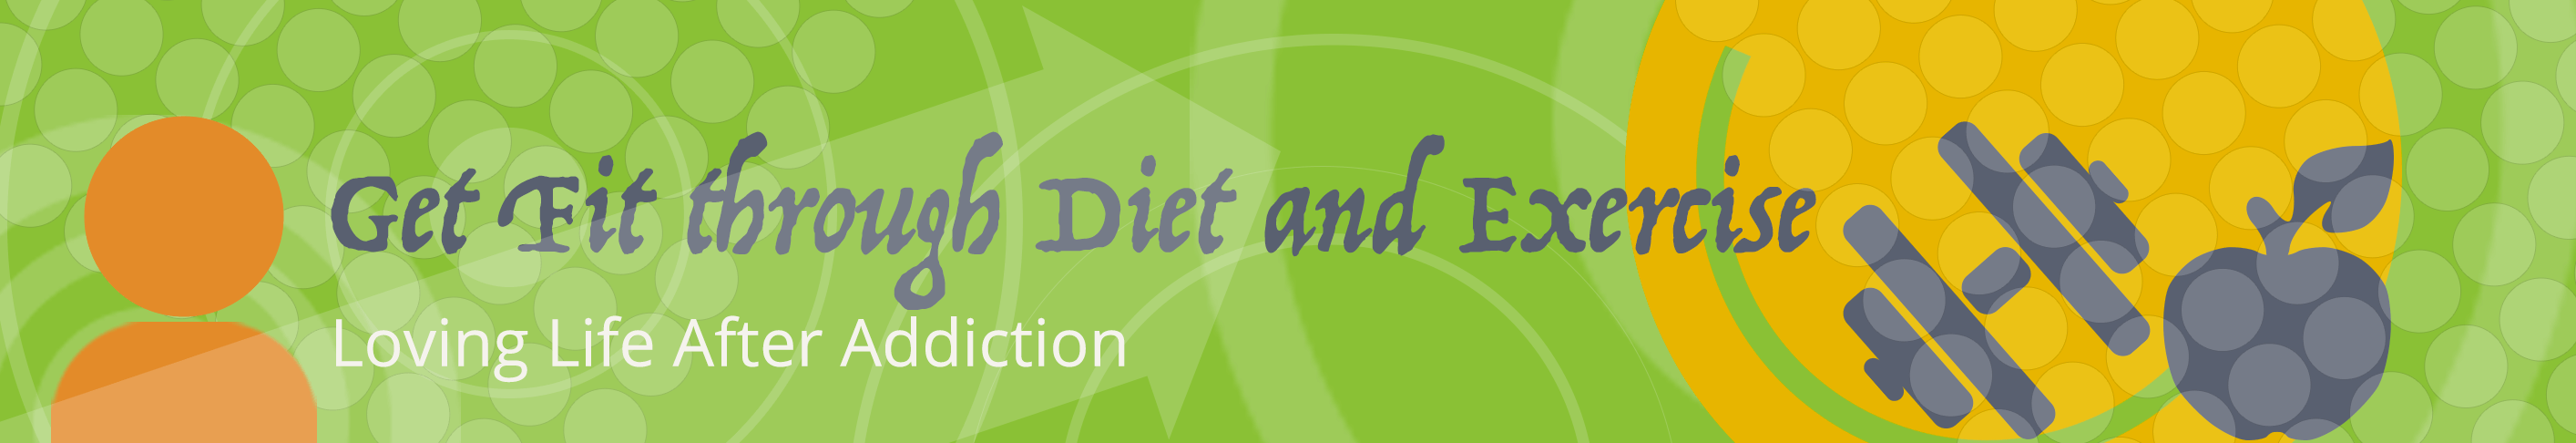 fit-diet-and-exercise